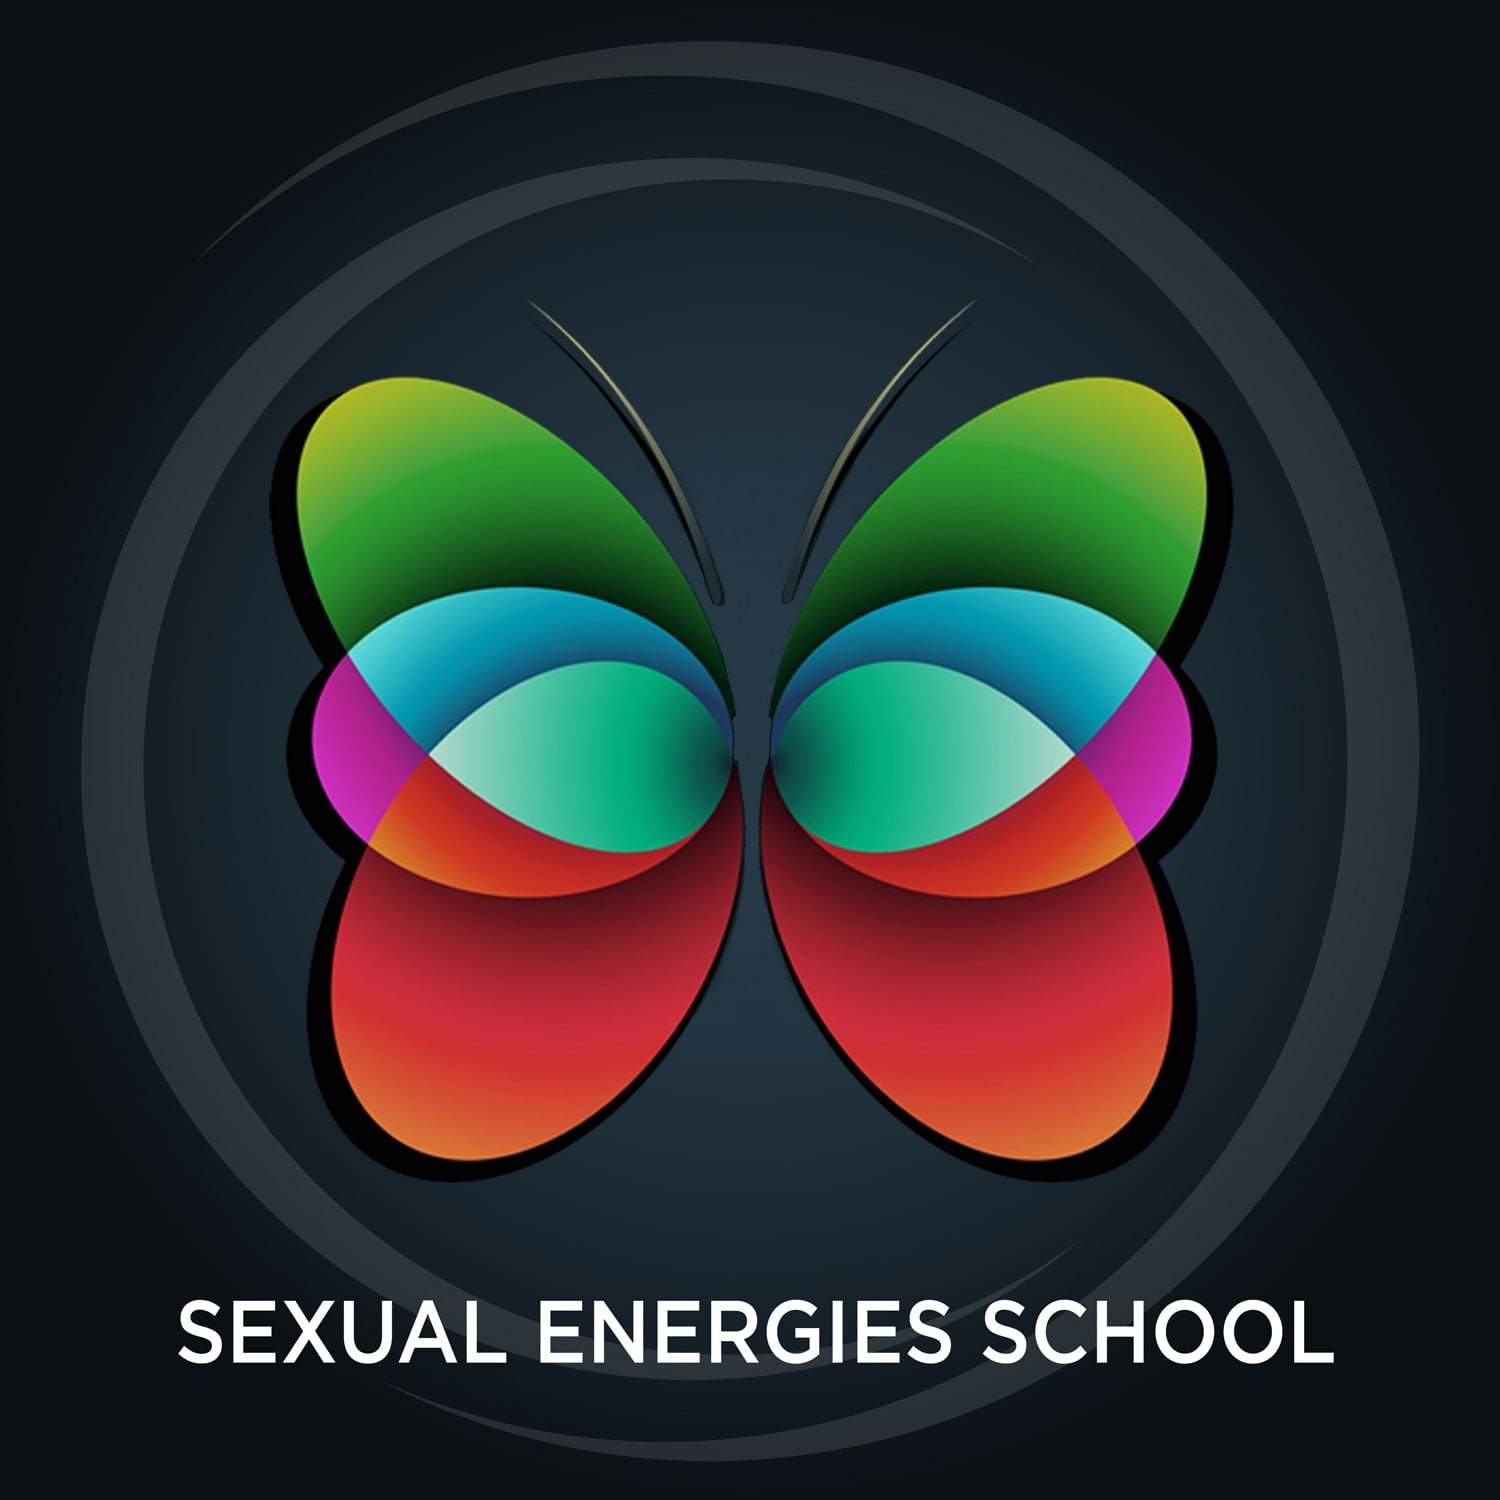 Sexual Energies School